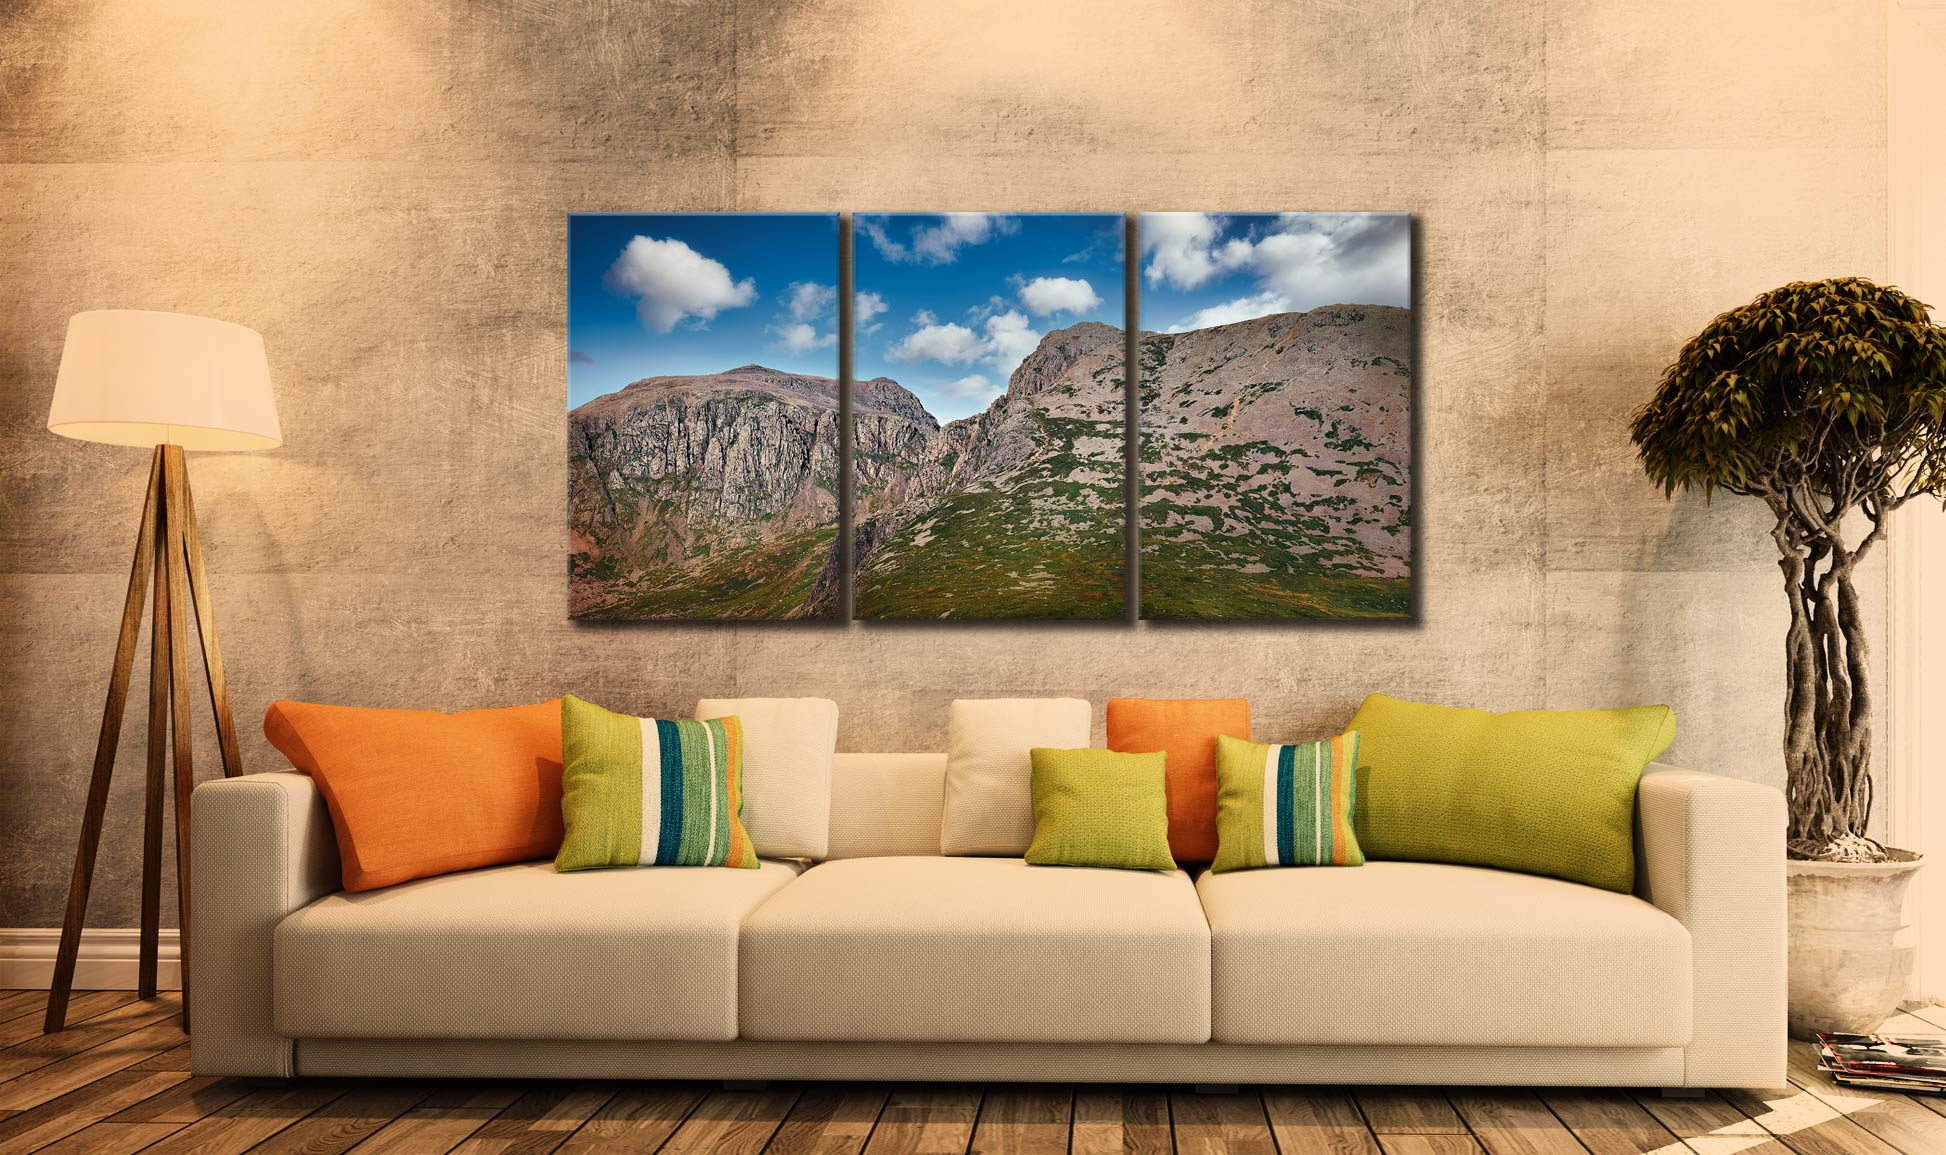 Sca Fell Pikes - 3 Panel Canvas on Wall